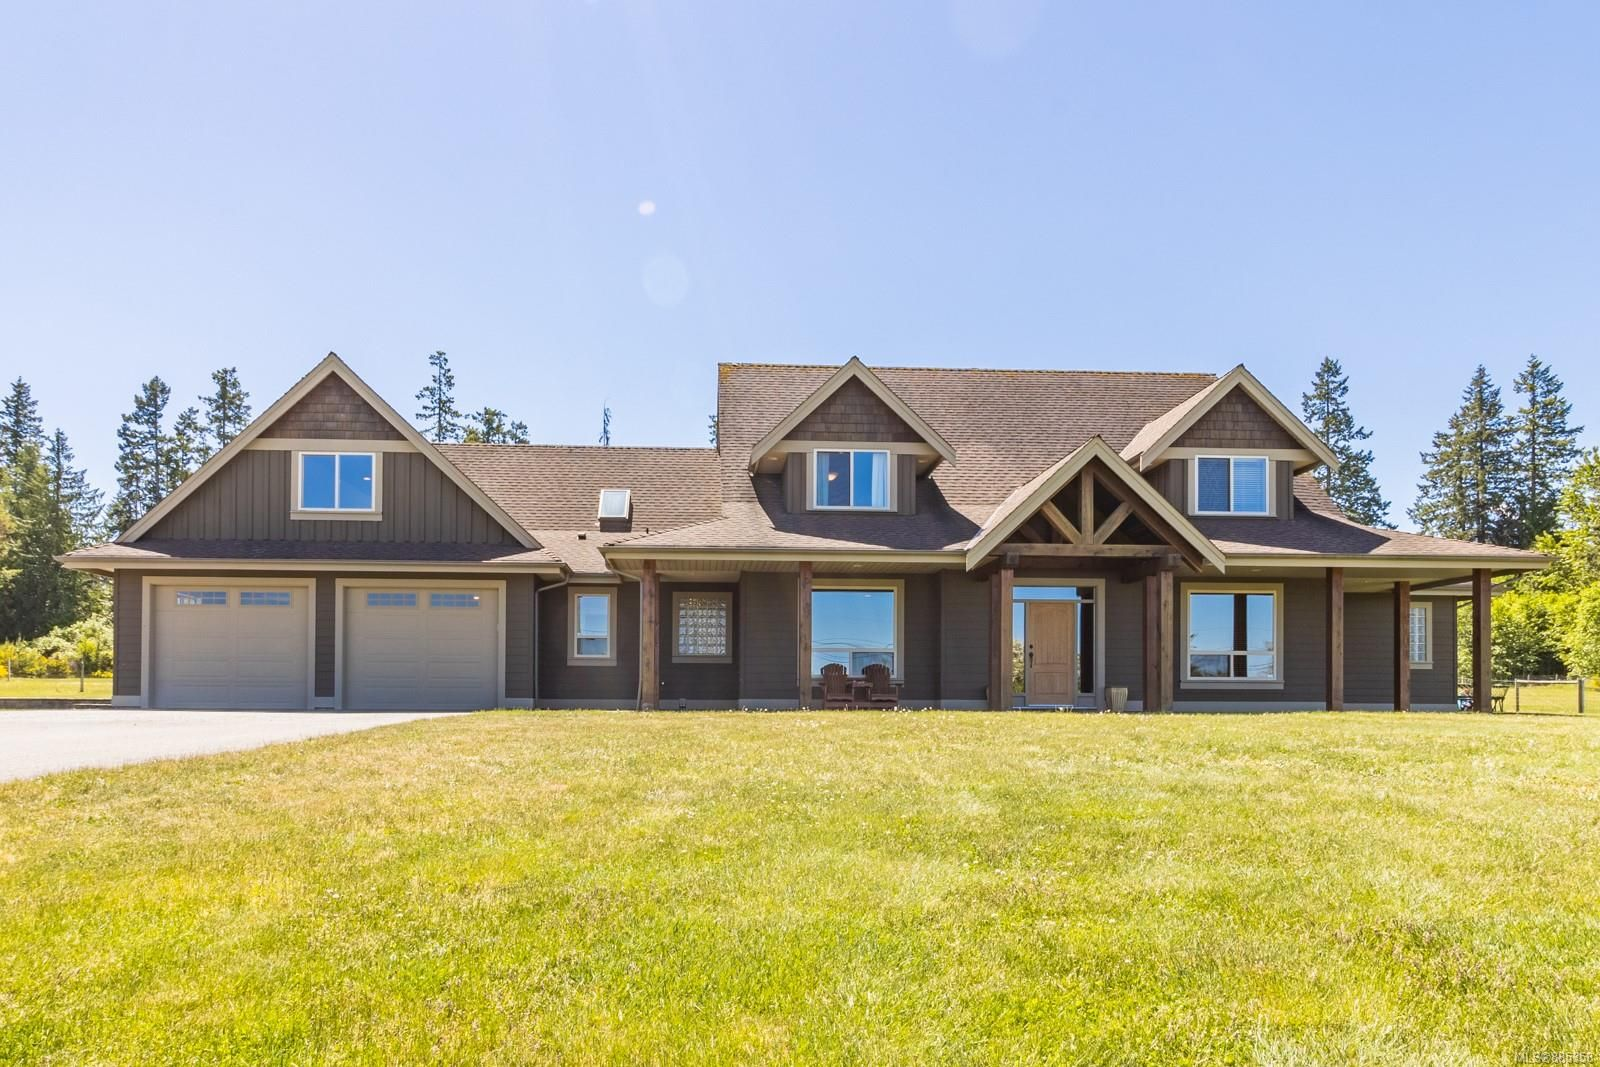 Main Photo: 2850 Peters Rd in : PQ Qualicum Beach House for sale (Parksville/Qualicum)  : MLS®# 885358